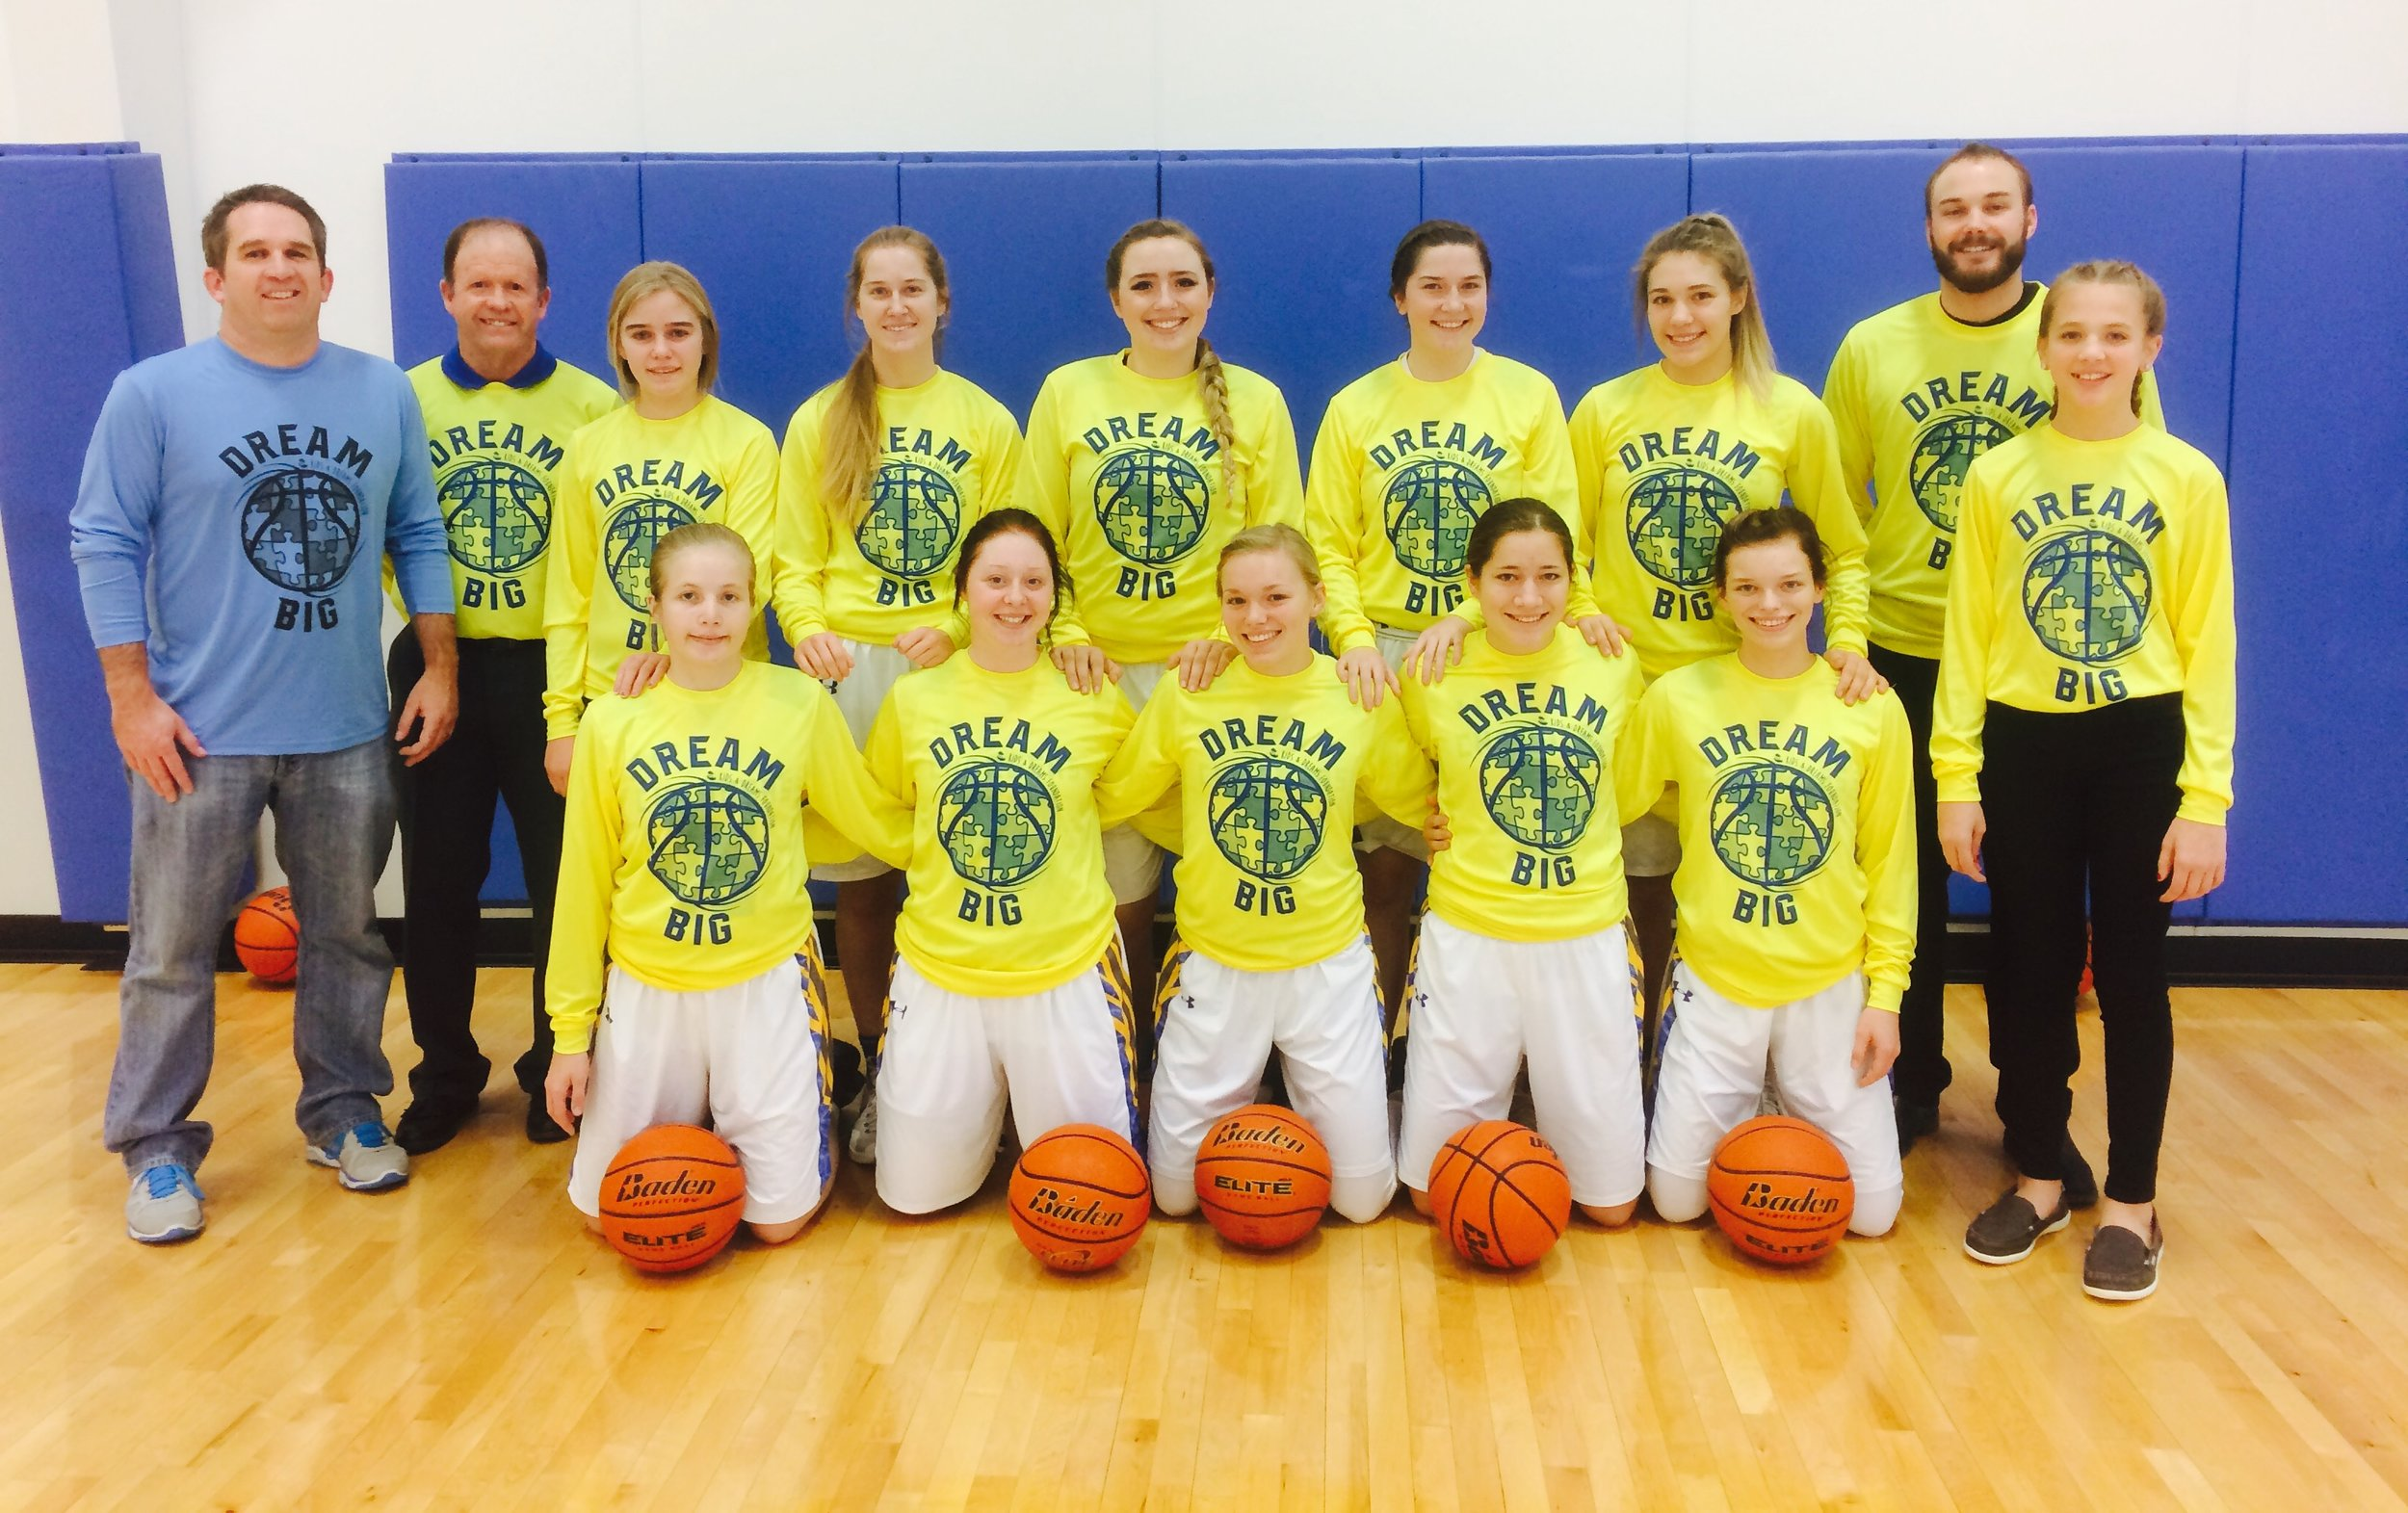 The Riverside girl's team helping us spread awareness. Thanks so much Chargers!! Good luck the rest of the season!